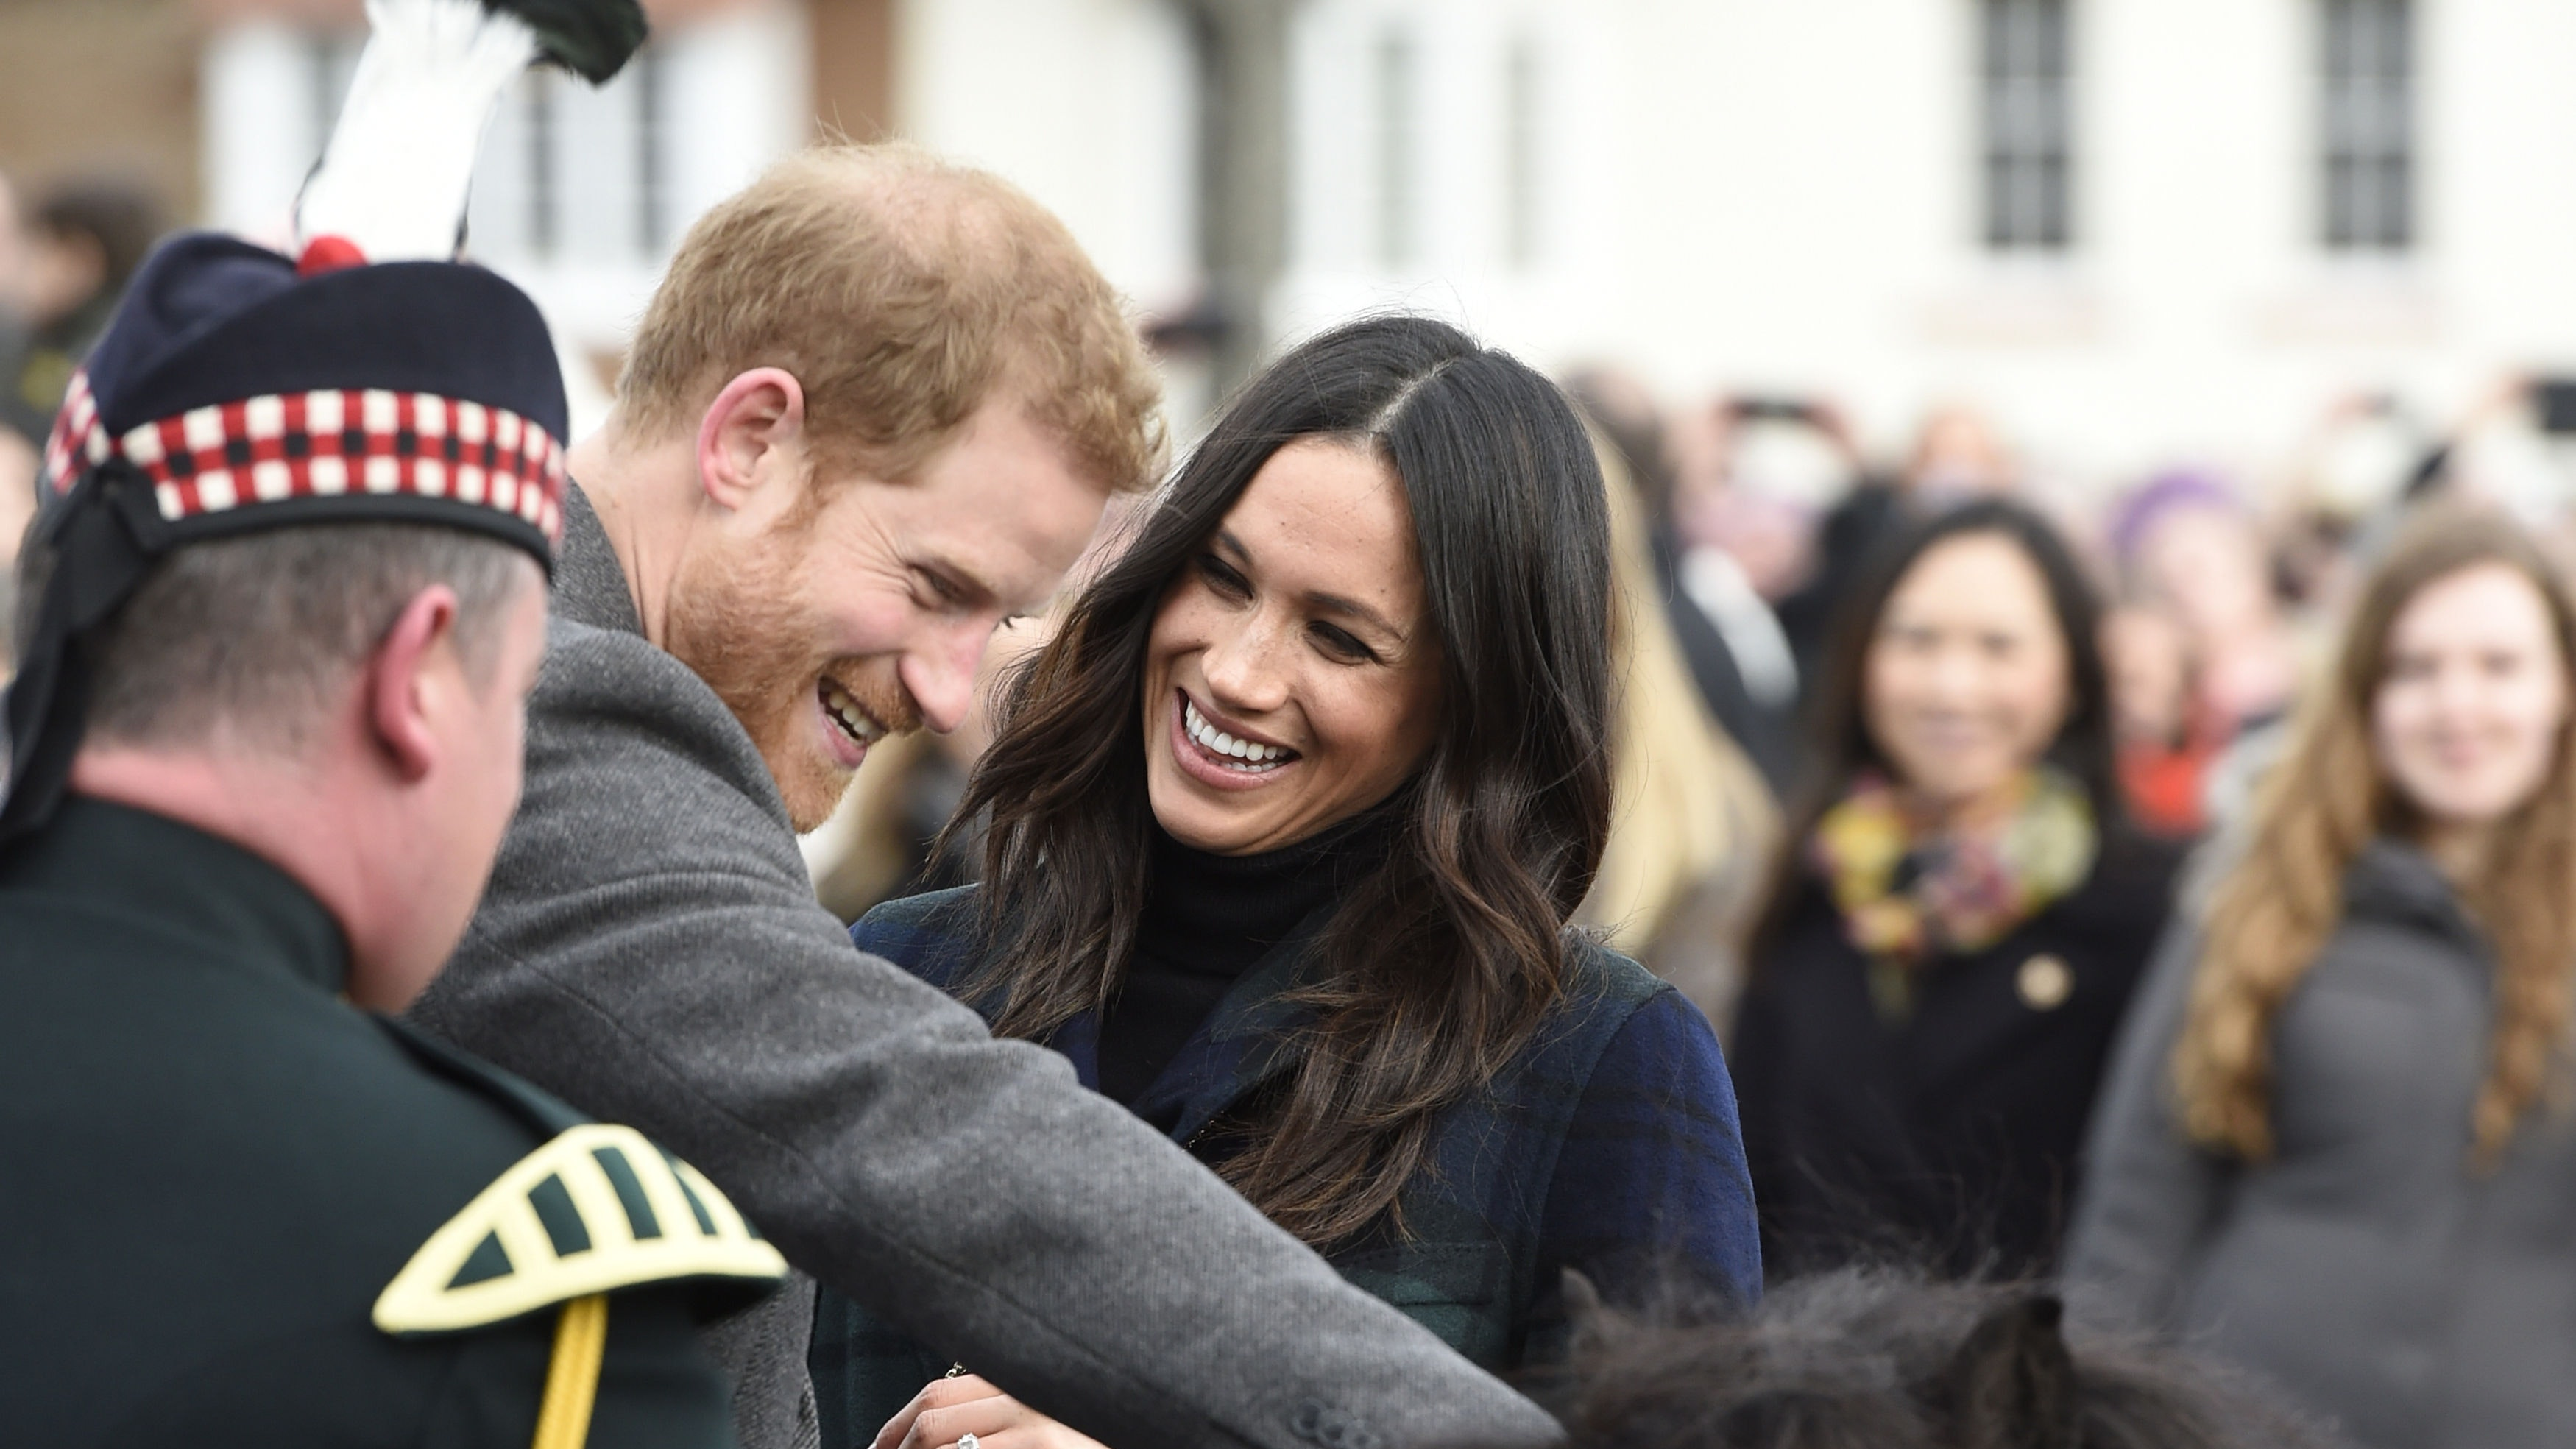 Harry And Meghan Warmly Welcomed At Edinburgh Castle By Crowds